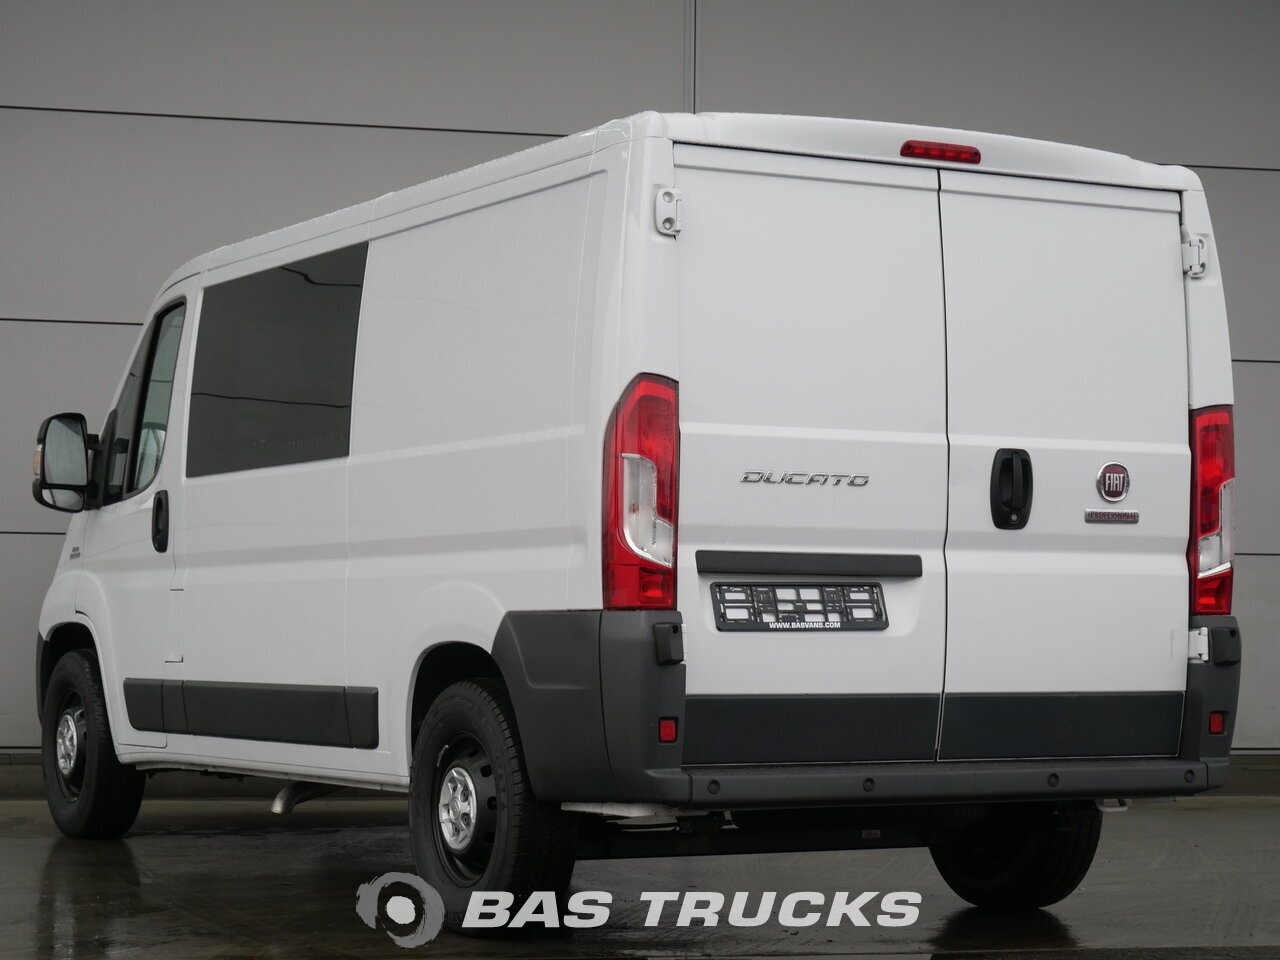 For Sale At Bas Trucks Fiat Ducato 4x2 112015